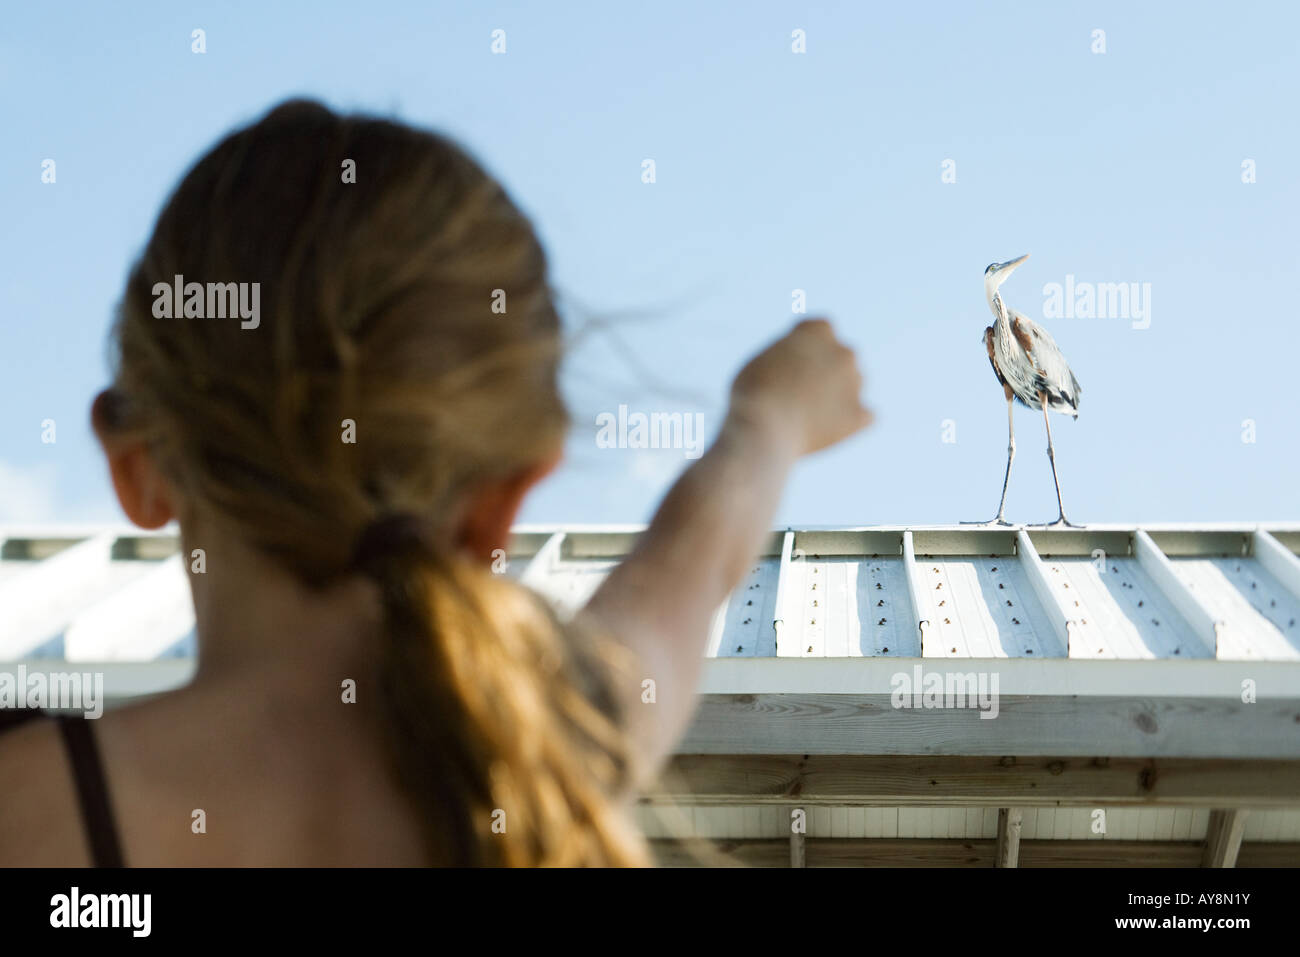 Little girl pointing at heron, rear view - Stock Image